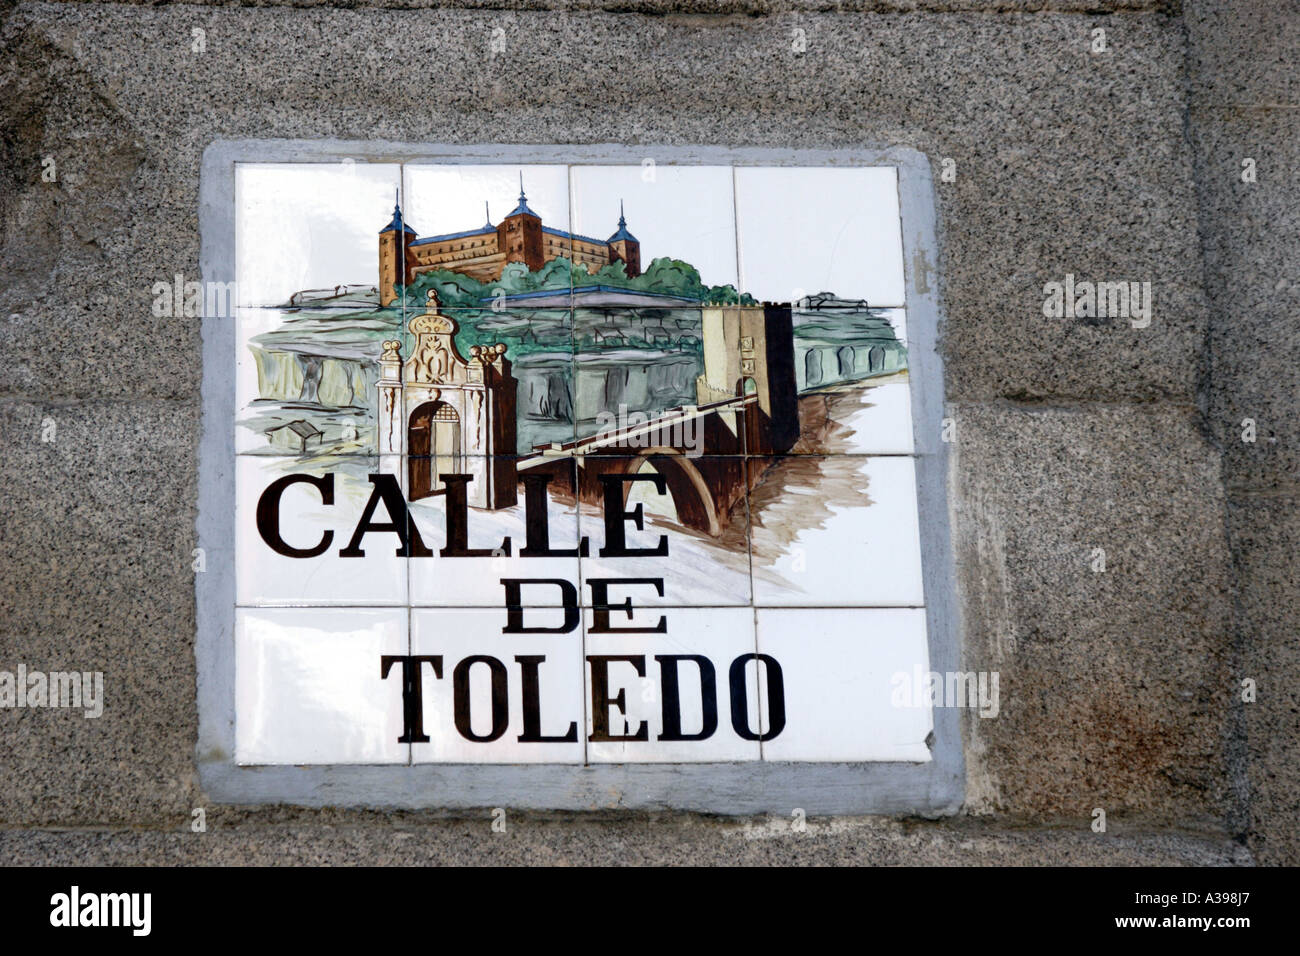 Ceramic tiles form the name sign for calle de toledo madrid stock ceramic tiles form the name sign for calle de toledo madrid dailygadgetfo Gallery